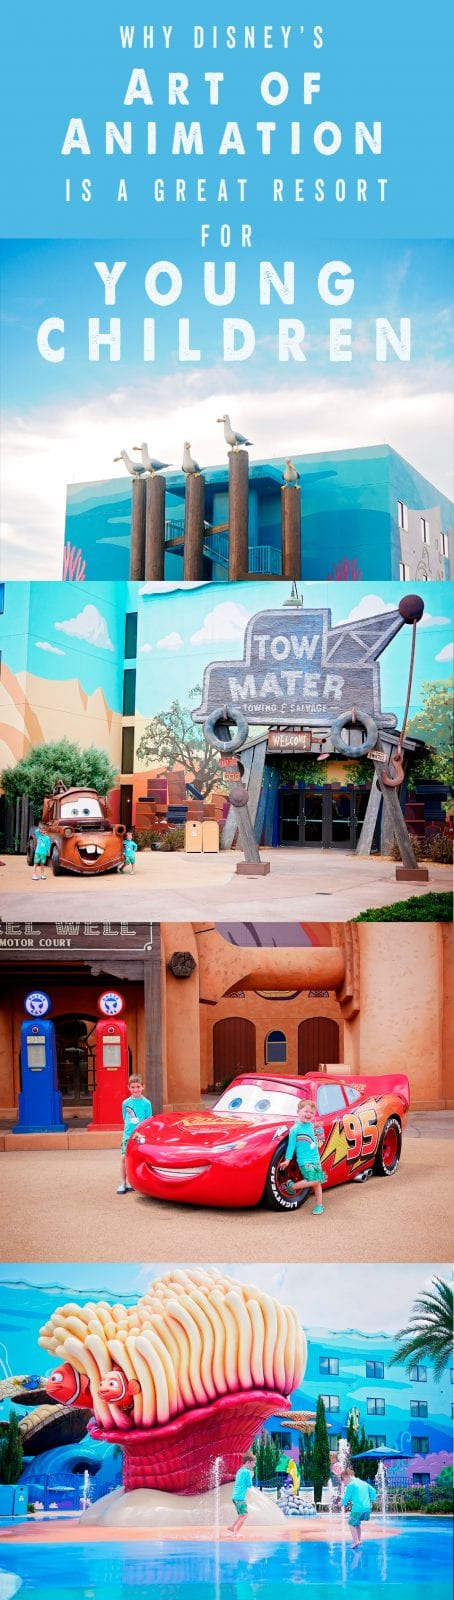 disney art of animation for young children